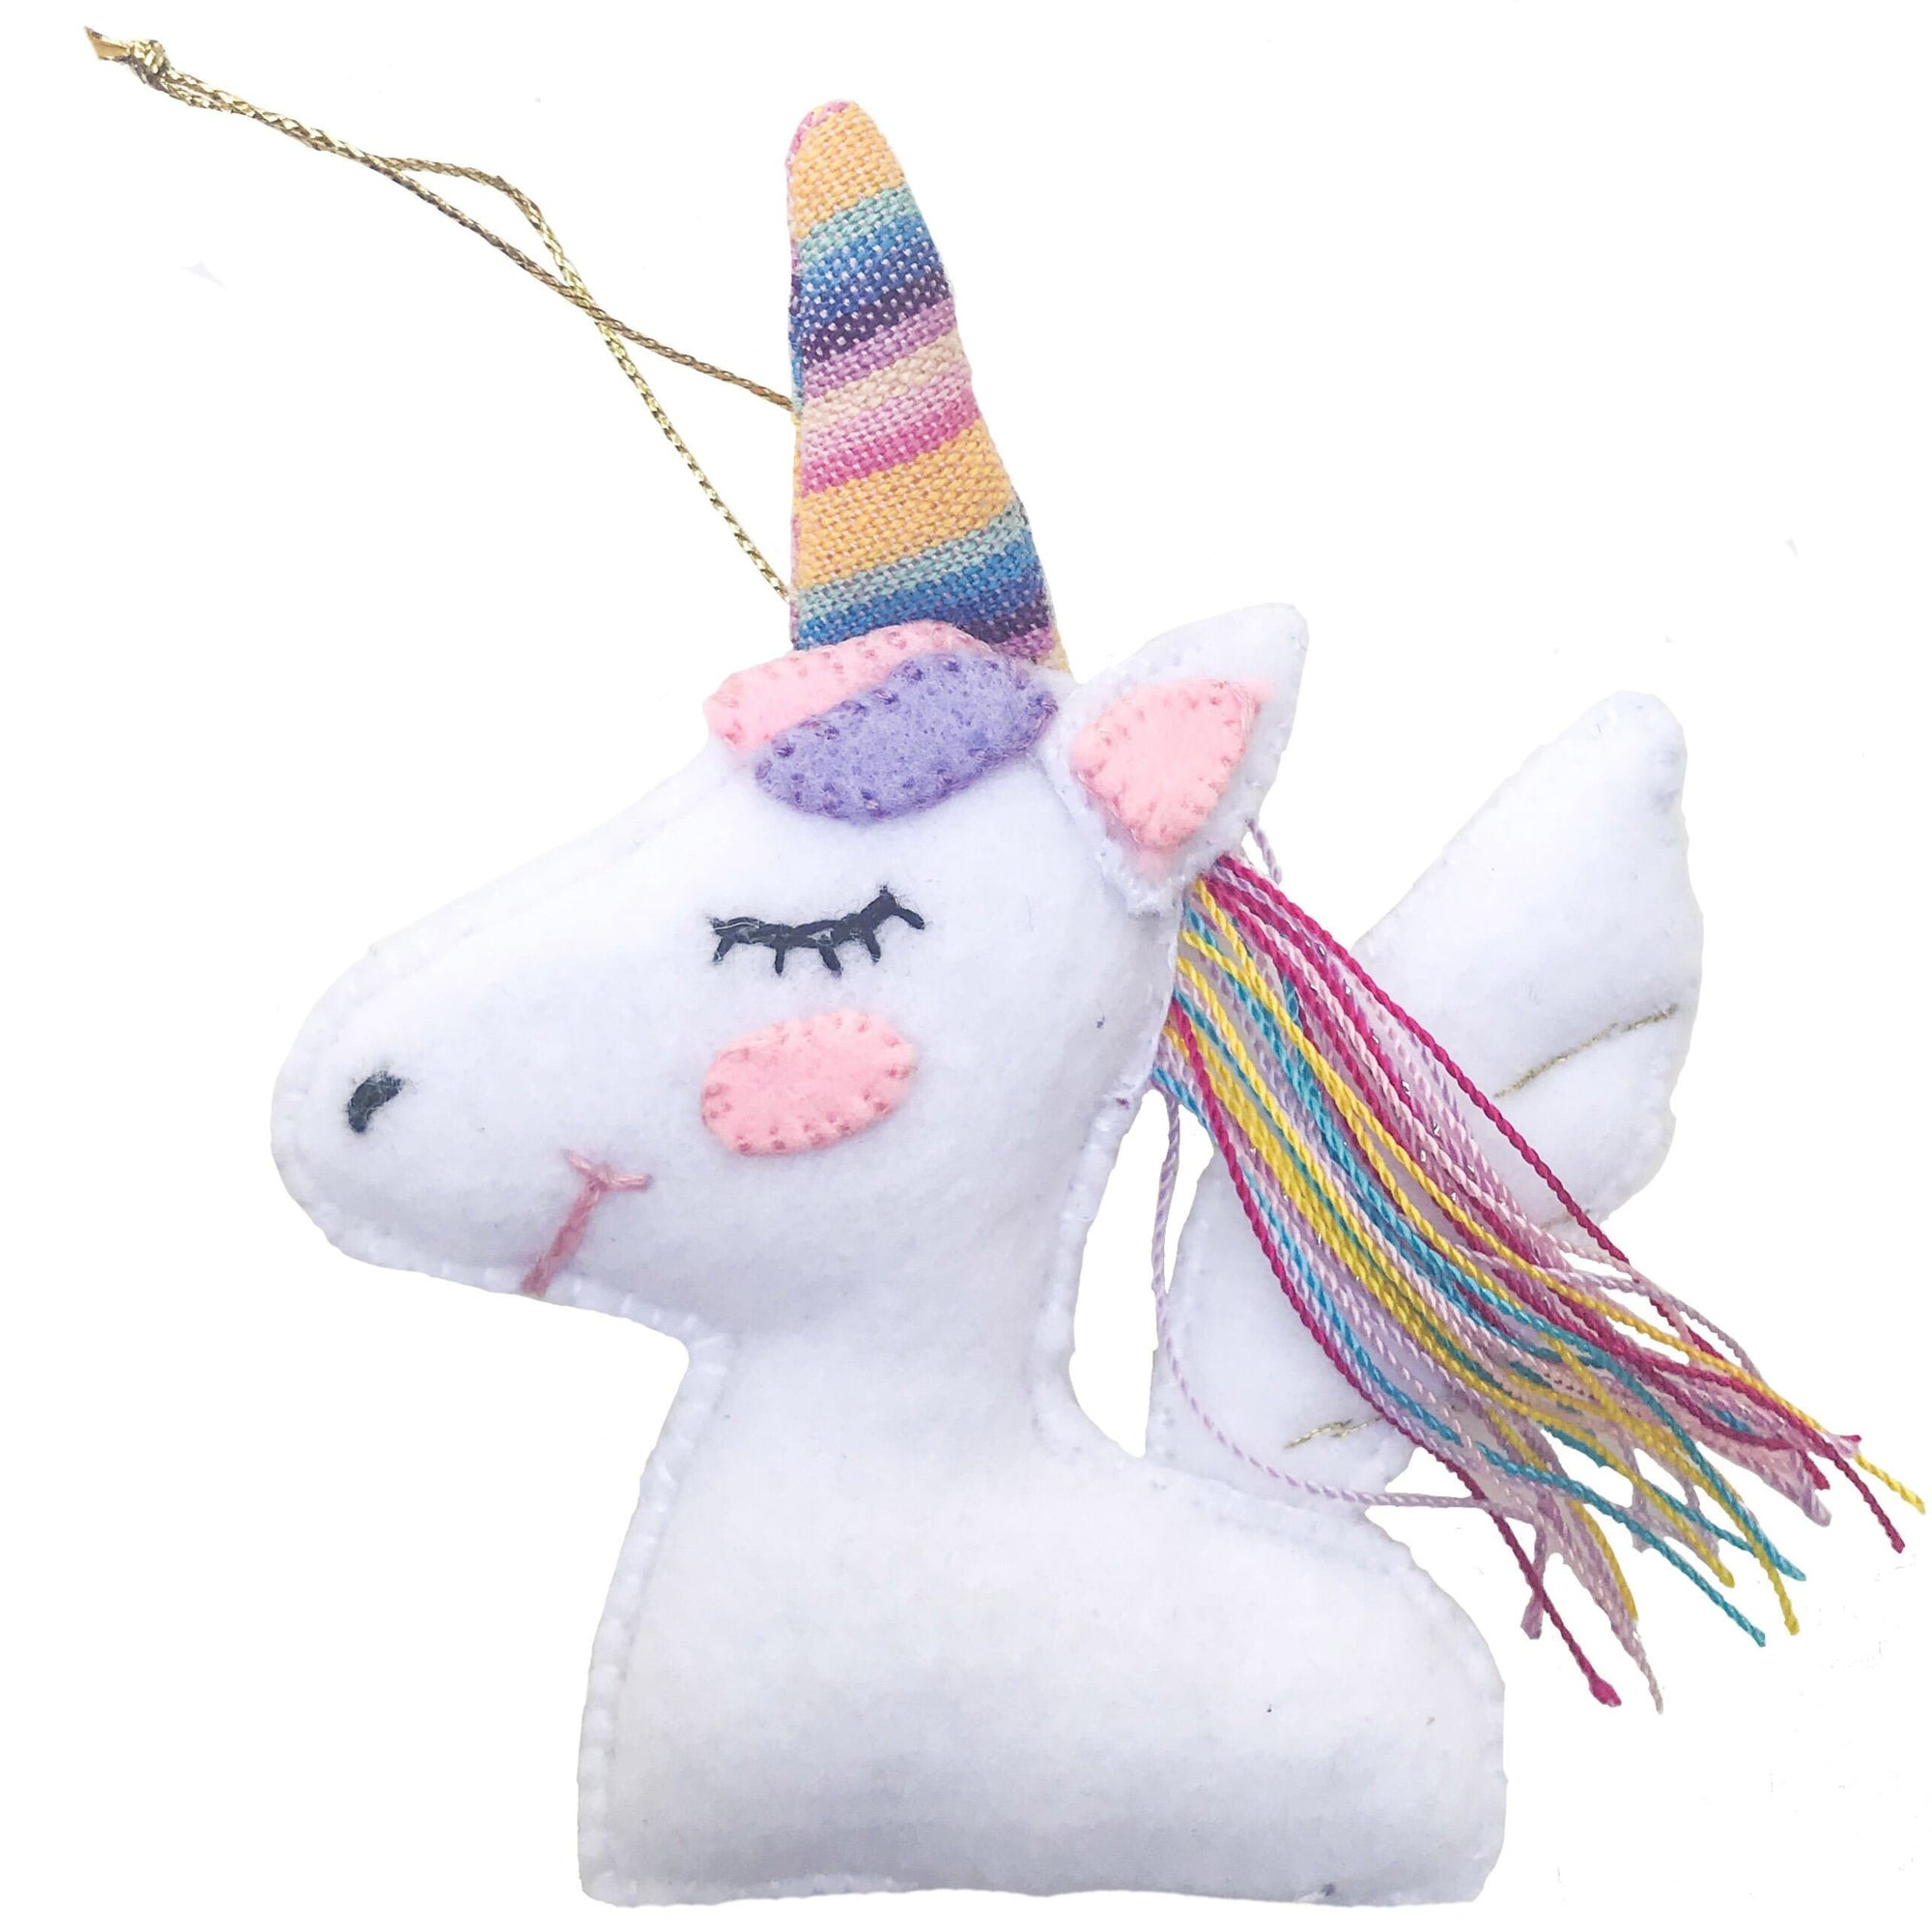 Handmade Felt Unicorn Ornament White ?id=13343896272949